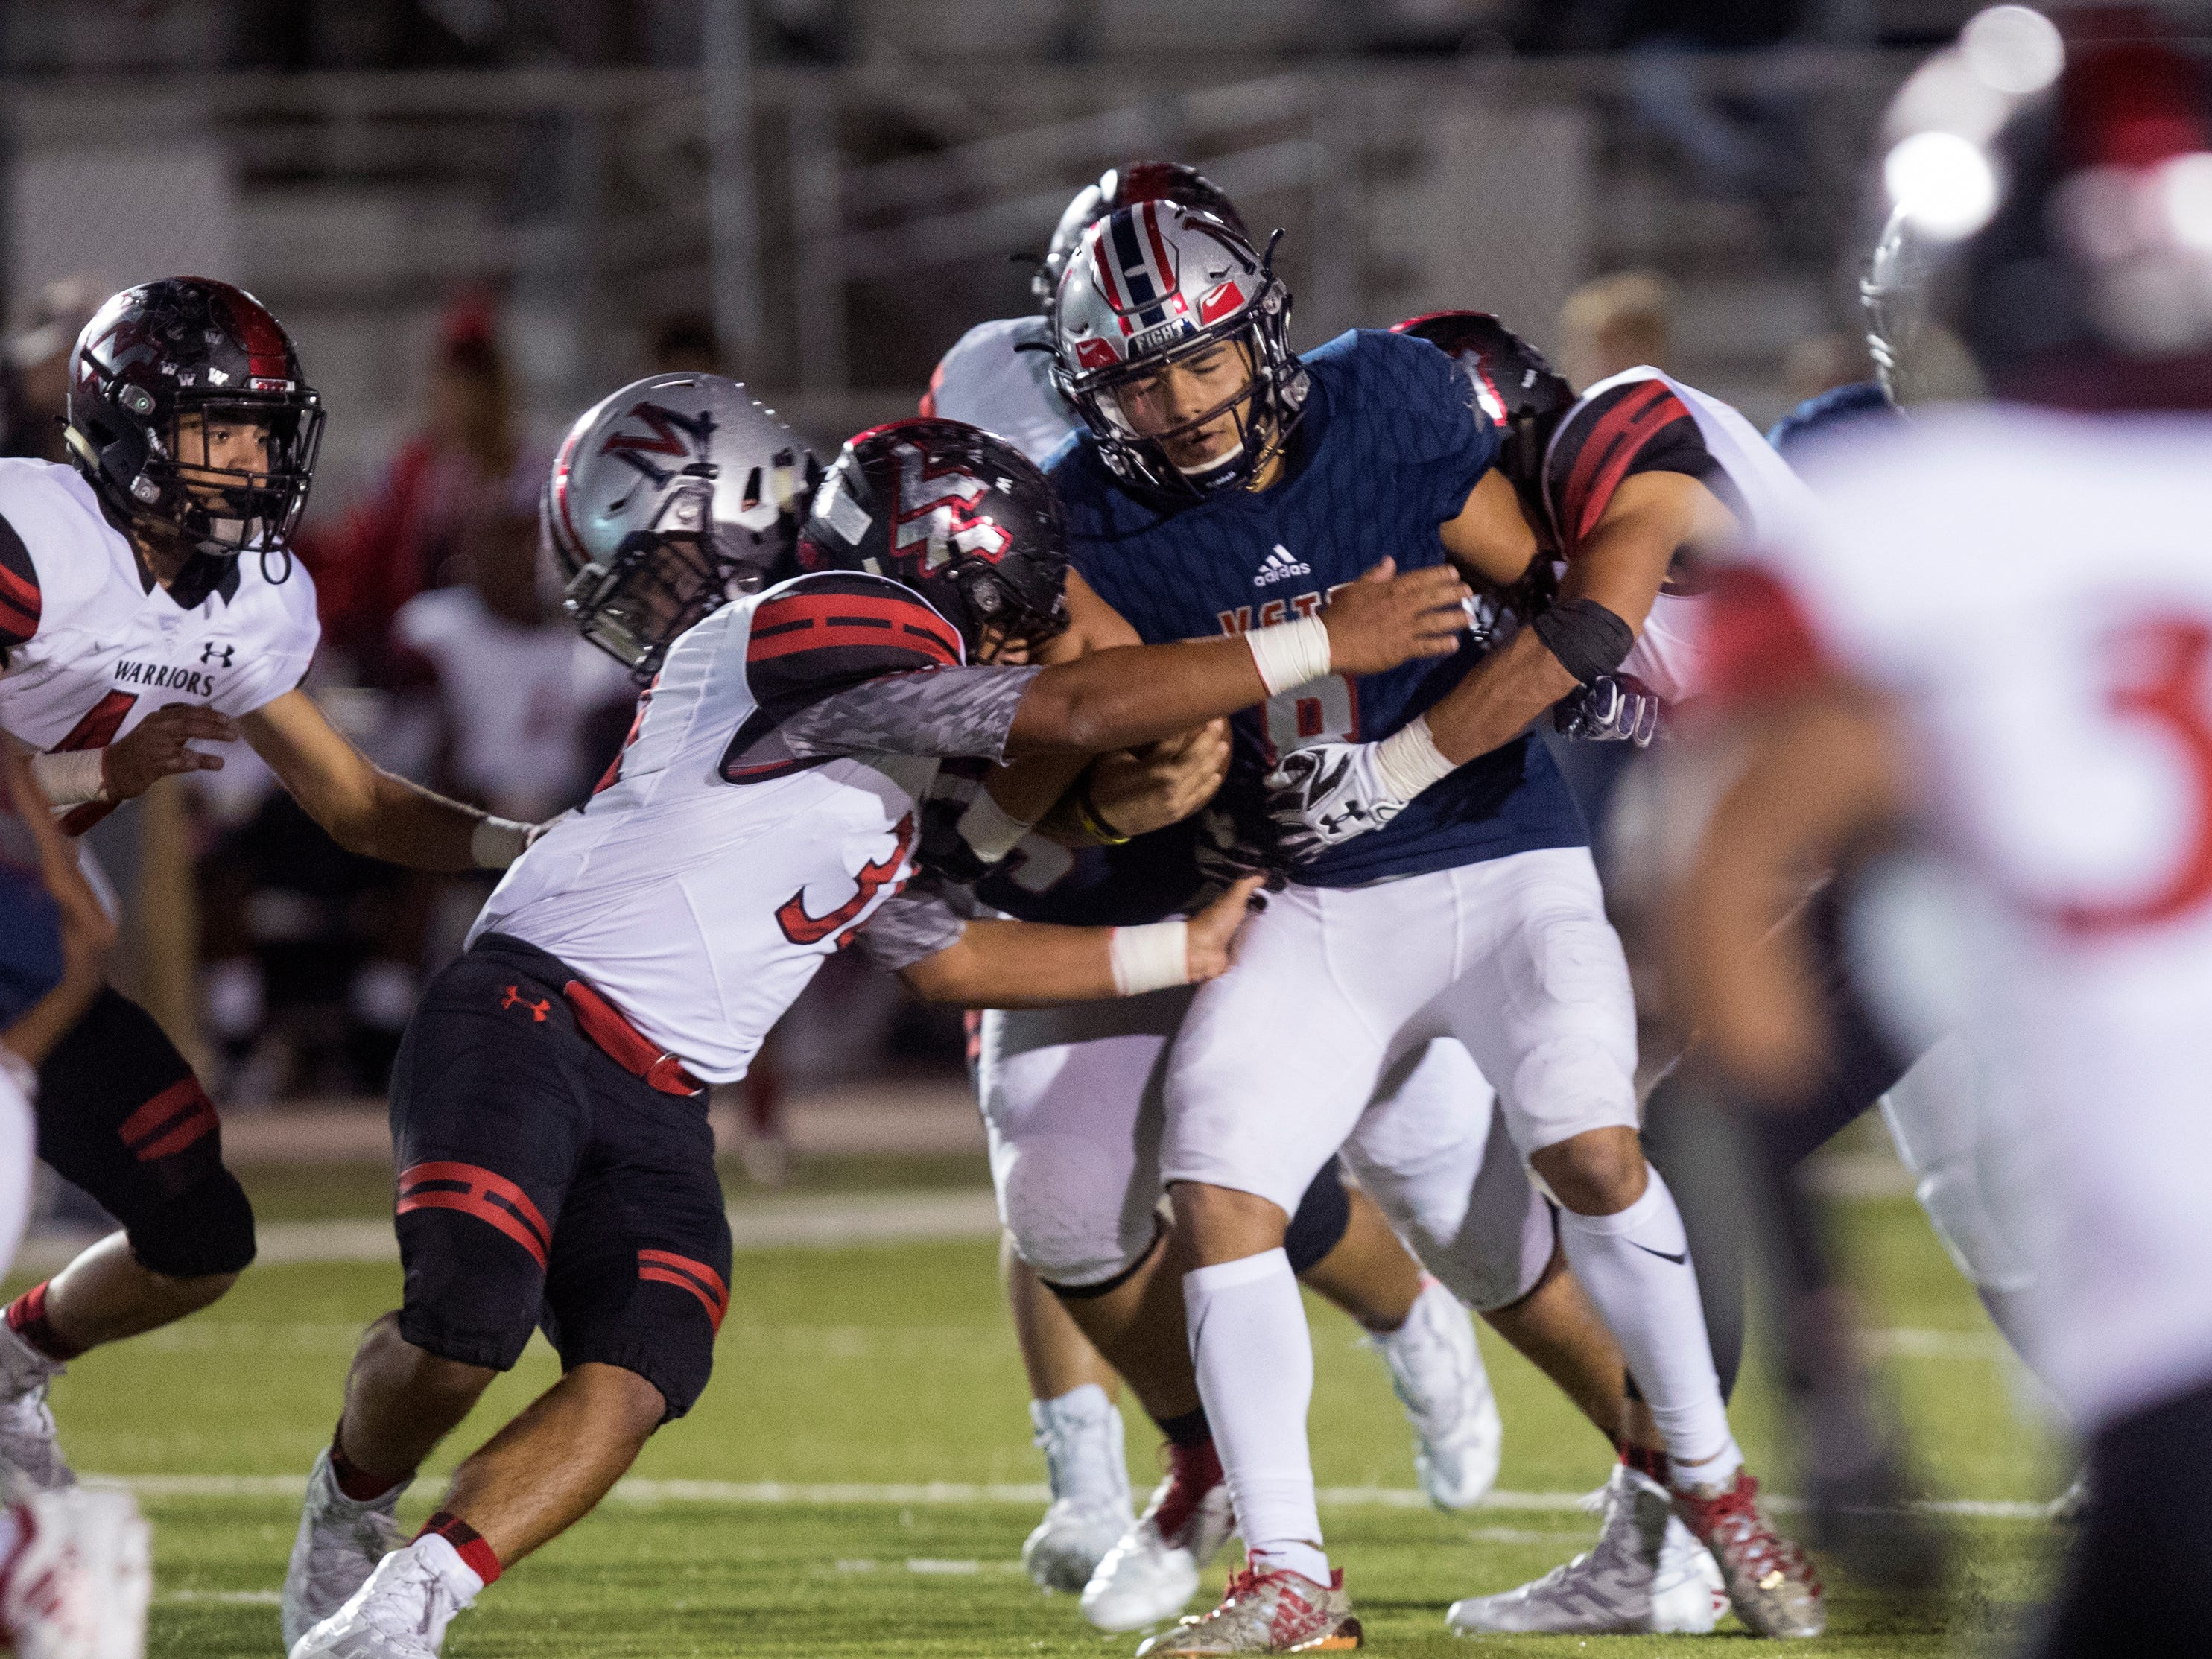 Veterans Memorial's David Soto runs the ball against Victoria West at Cabaniss Field on Friday, November 2, 2018.